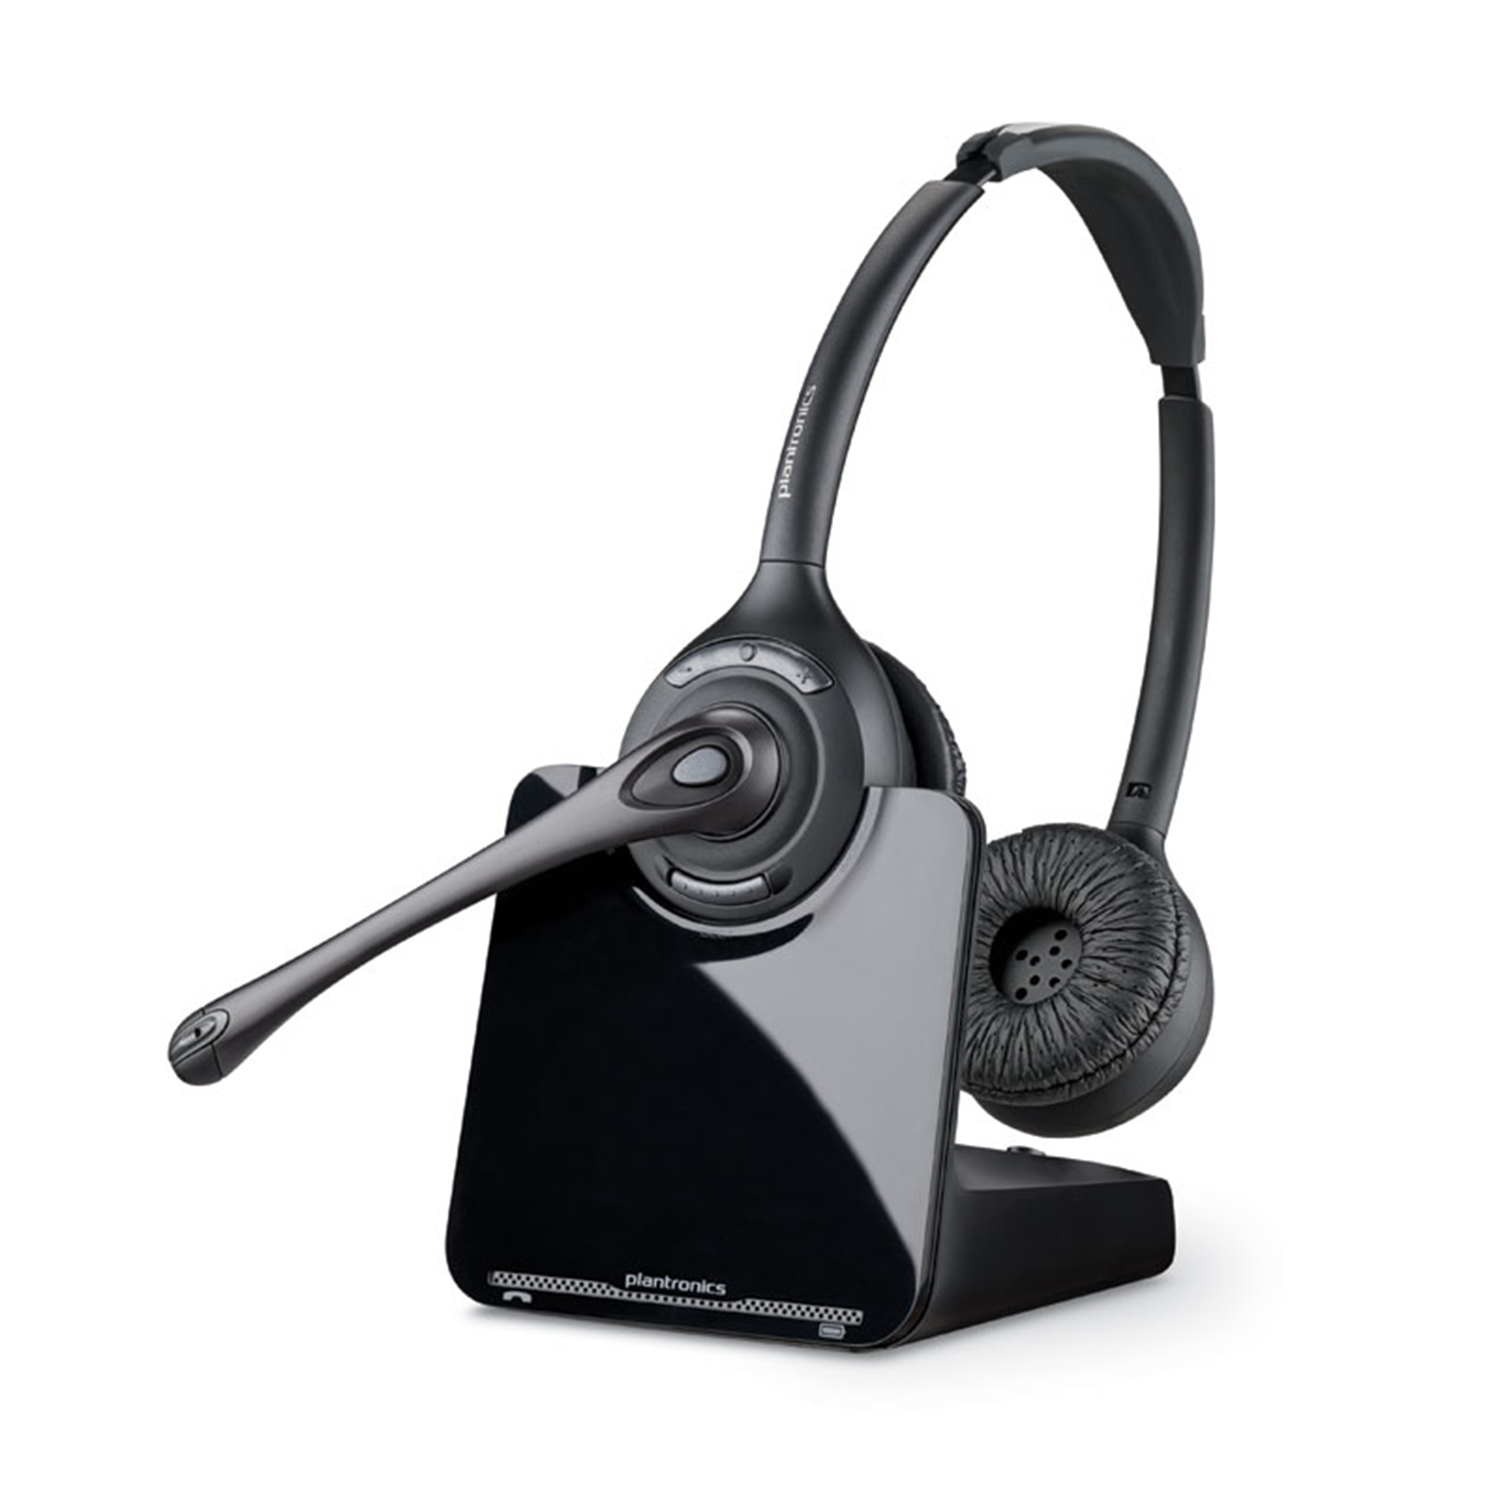 Plantronics CS520A Binaural DECT Wireless Headset